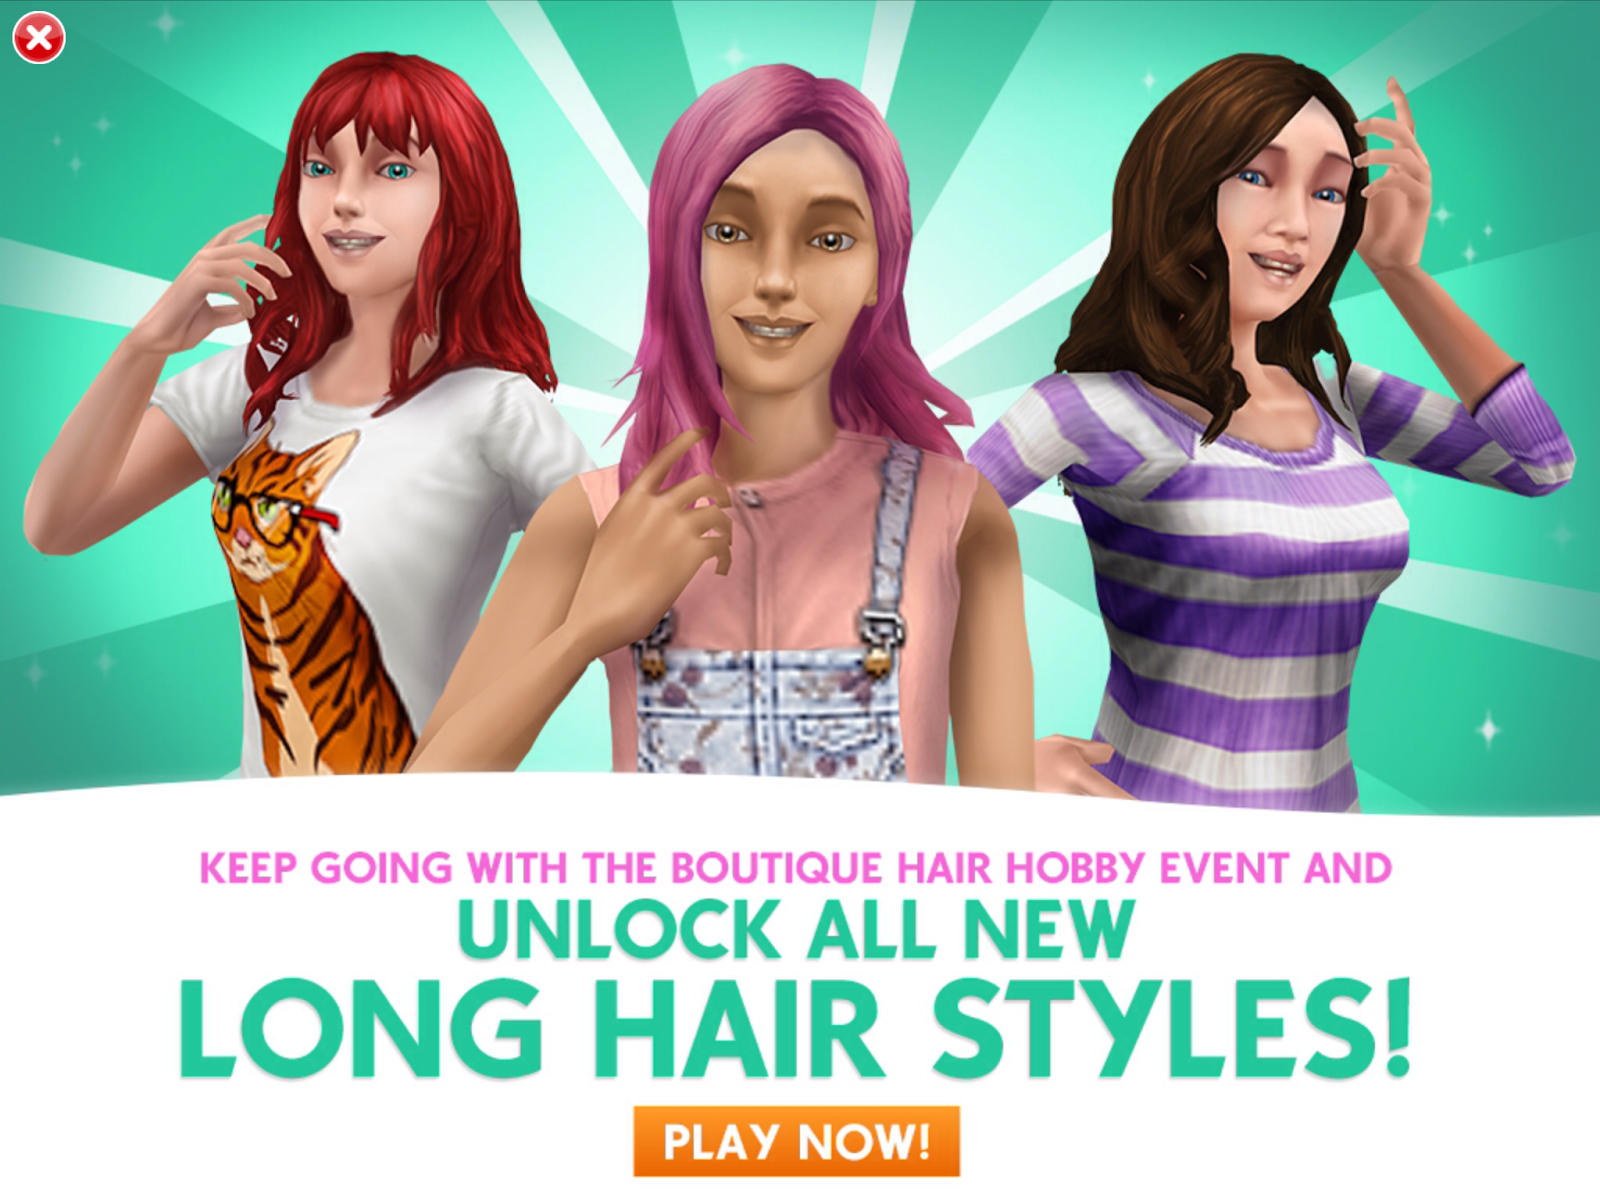 The sims freeplay long hairstyle - The Sims Freeplay Boutique Hair Event Quest Walkthrough Tips